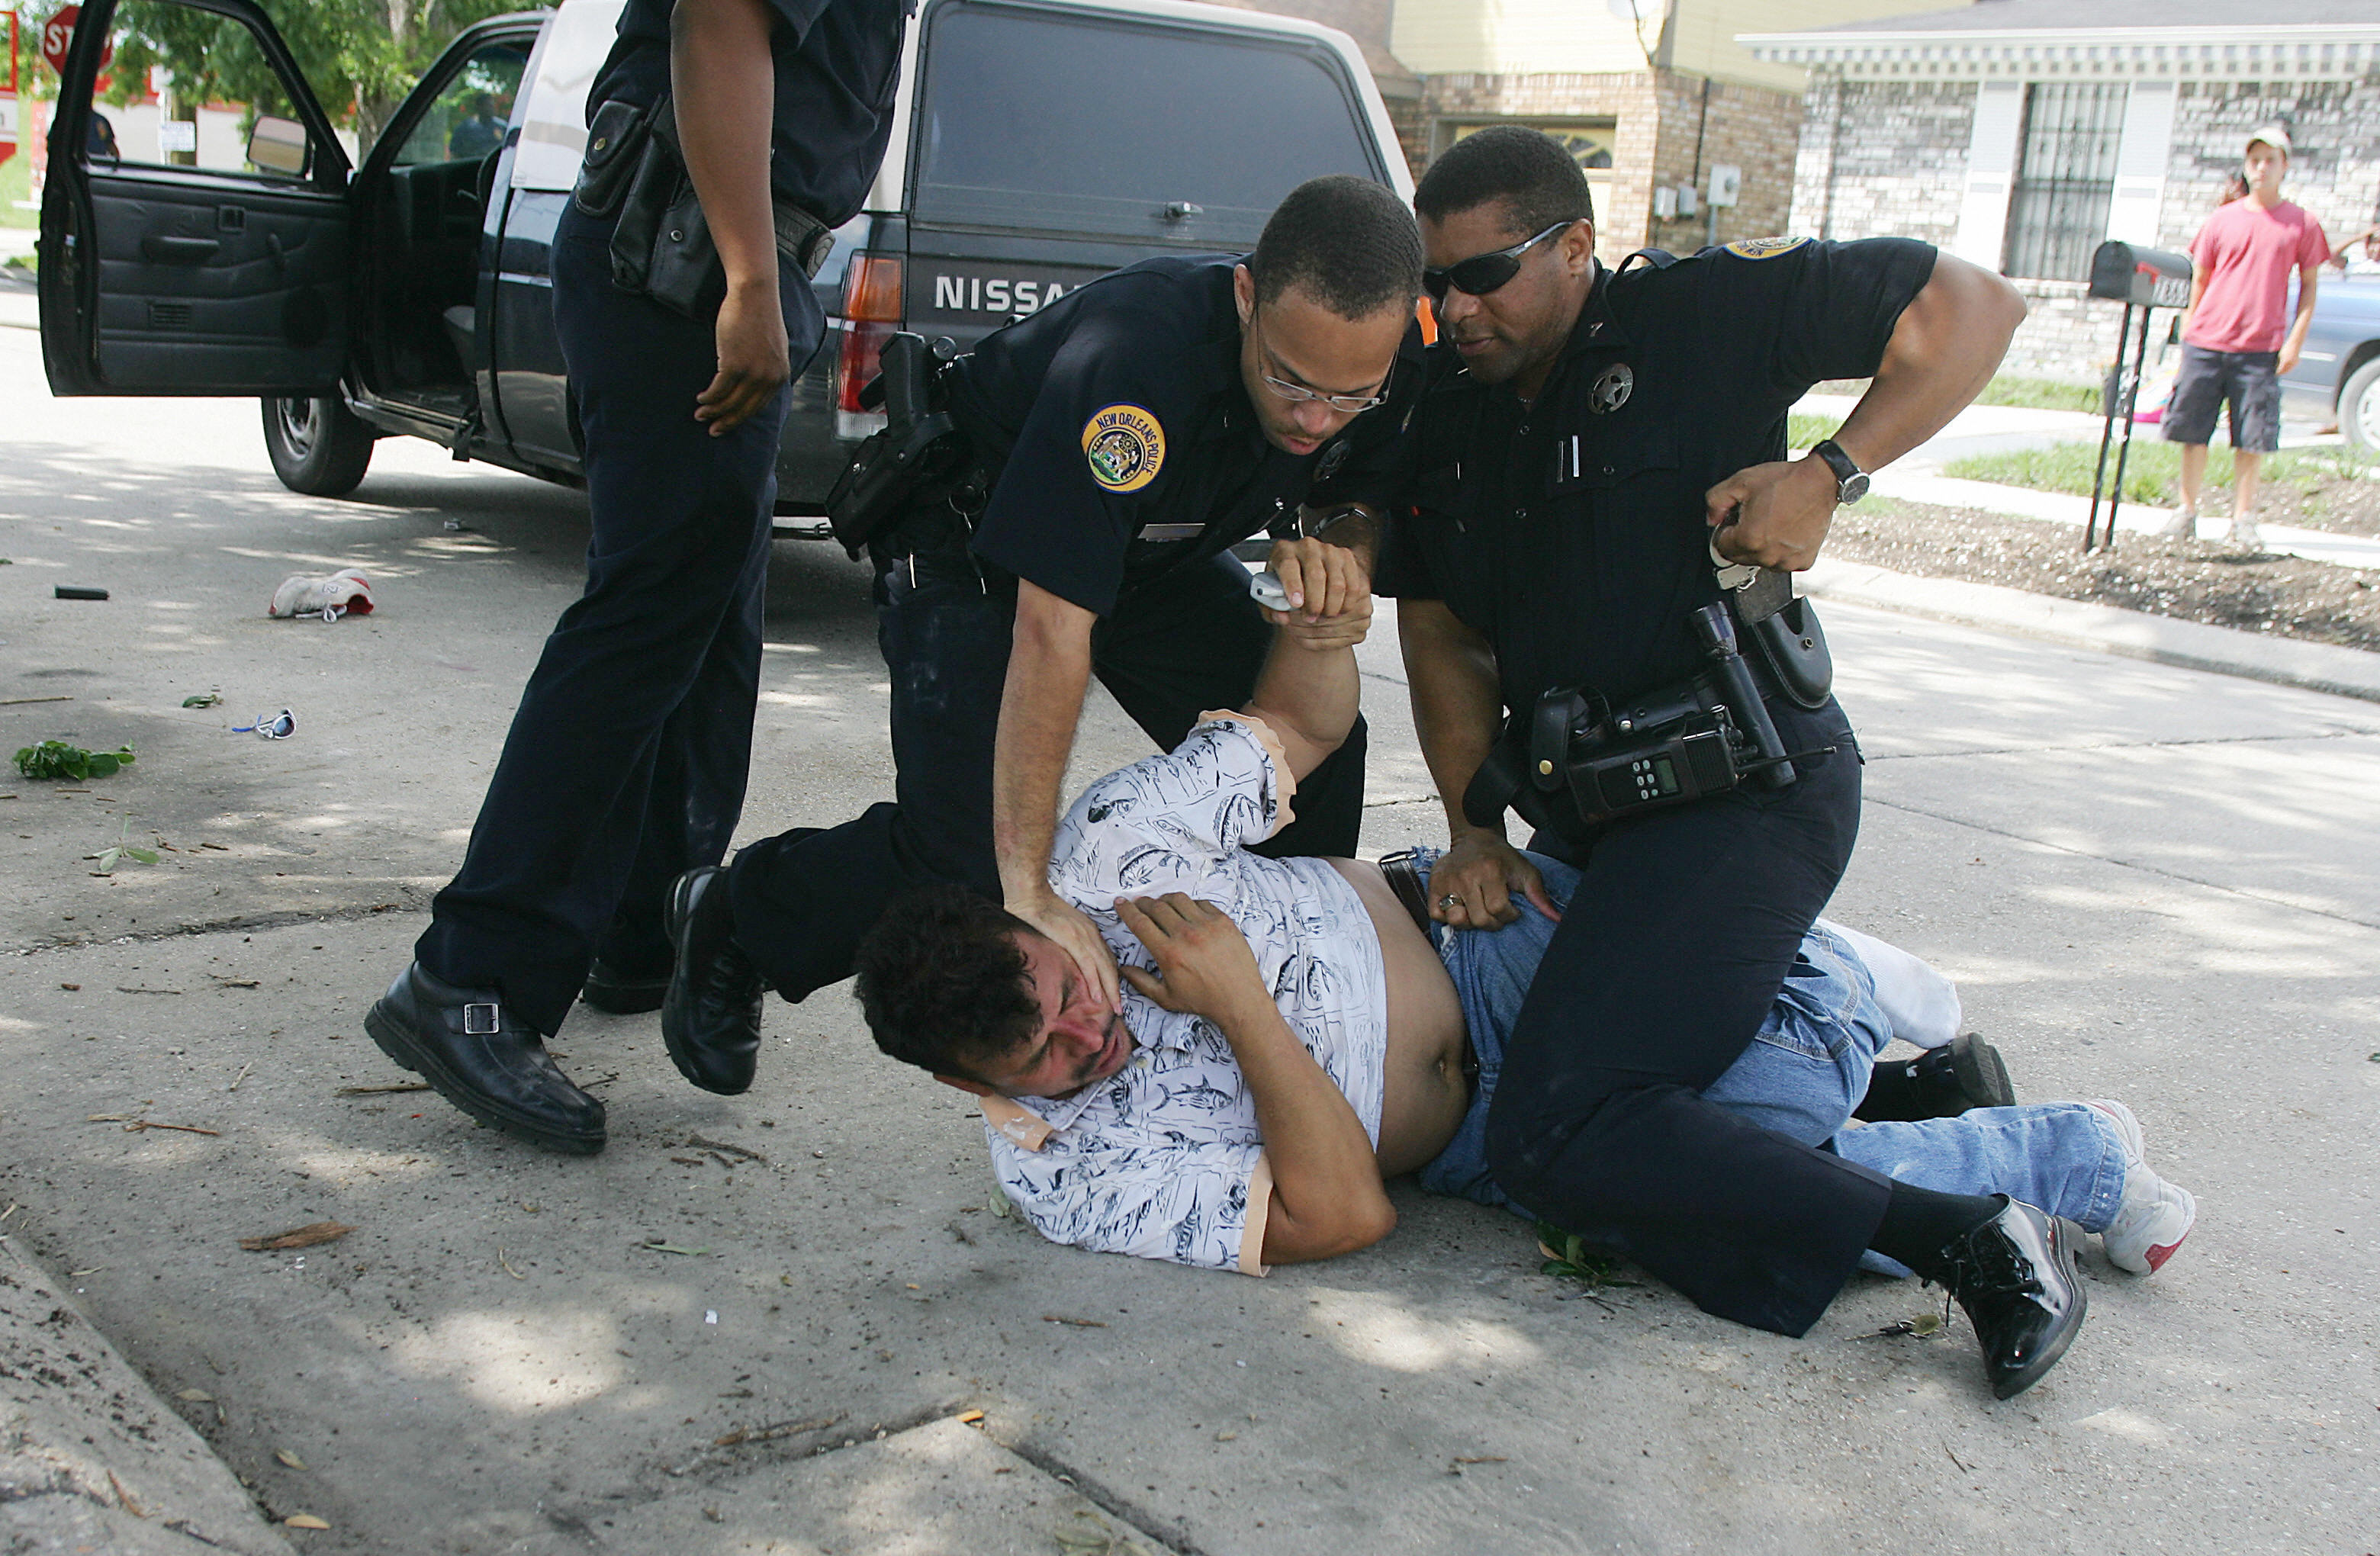 New Orleans Police subdue a man who refused to cooperate when he was asked to step out of his car and who was found to have a knife in the front seat, at the scene of a house fire in New Orleans East on July 6, 2006.